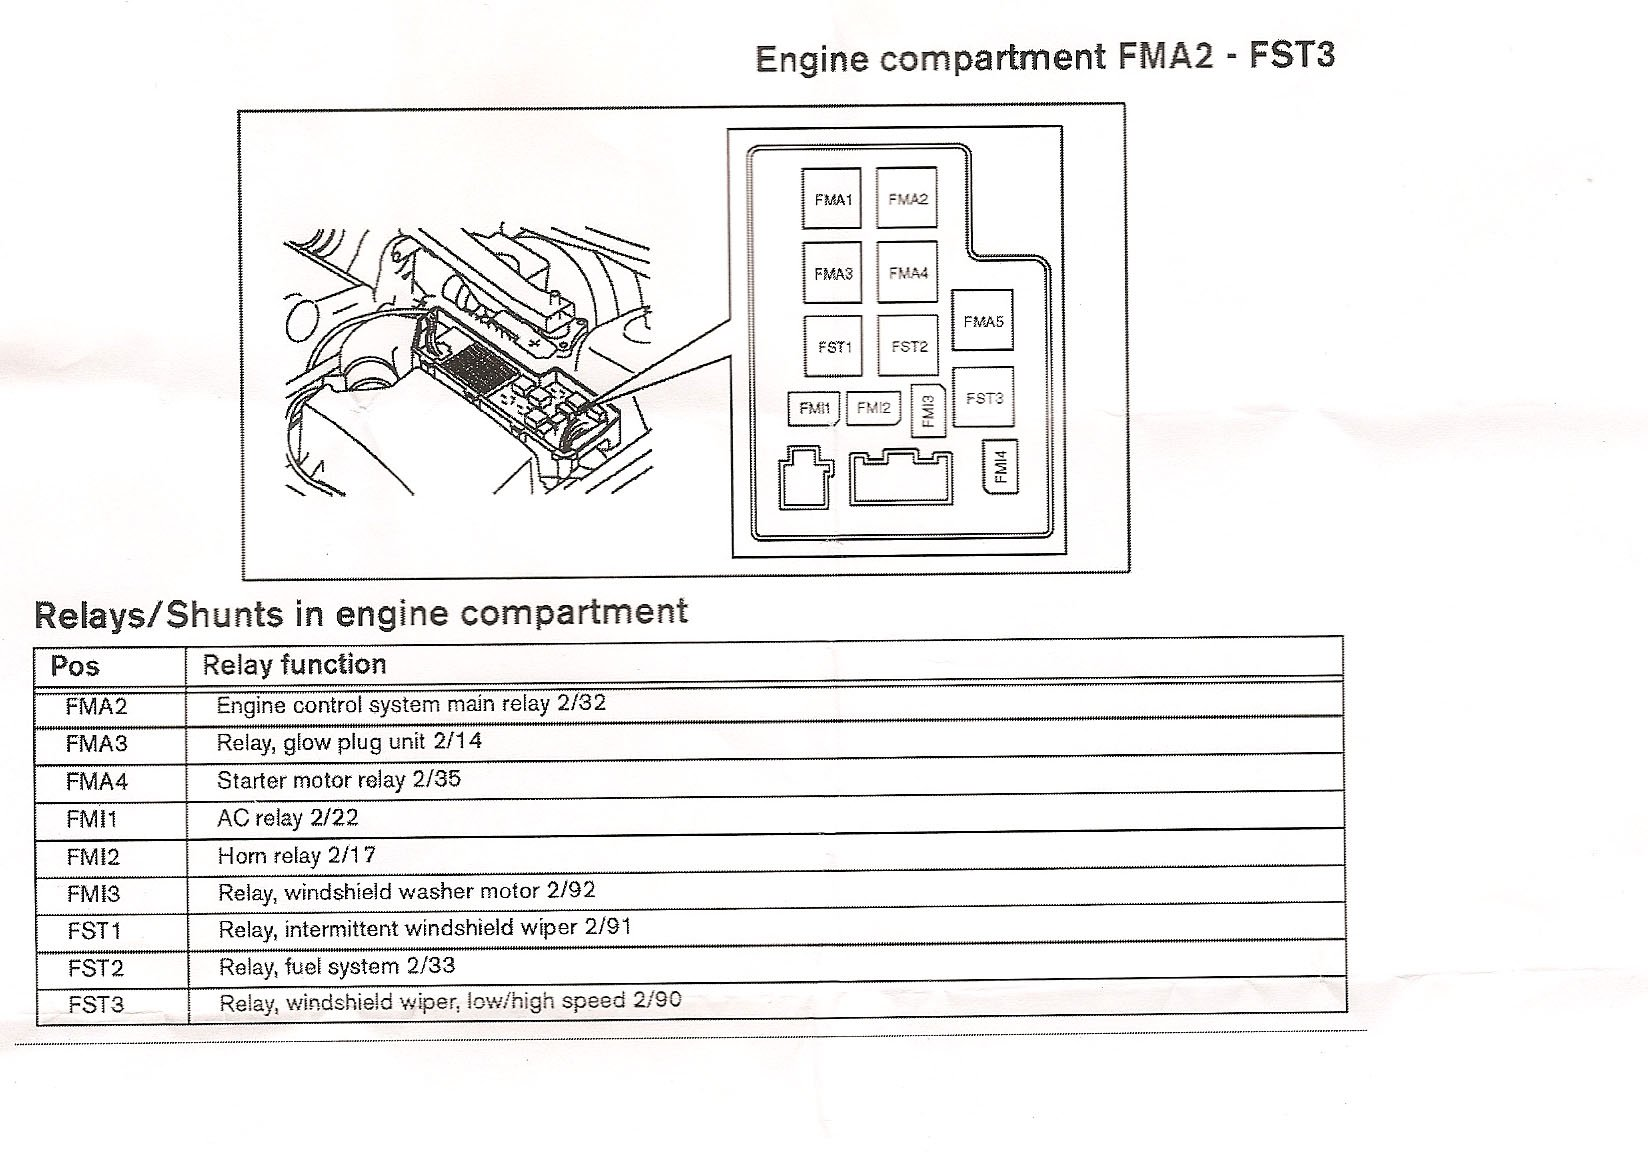 2007 Volvo Rear Diagram Nice Place To Get Wiring S40 Fuse Box S60 Diagrams Rh 39 Shareplm De 2006